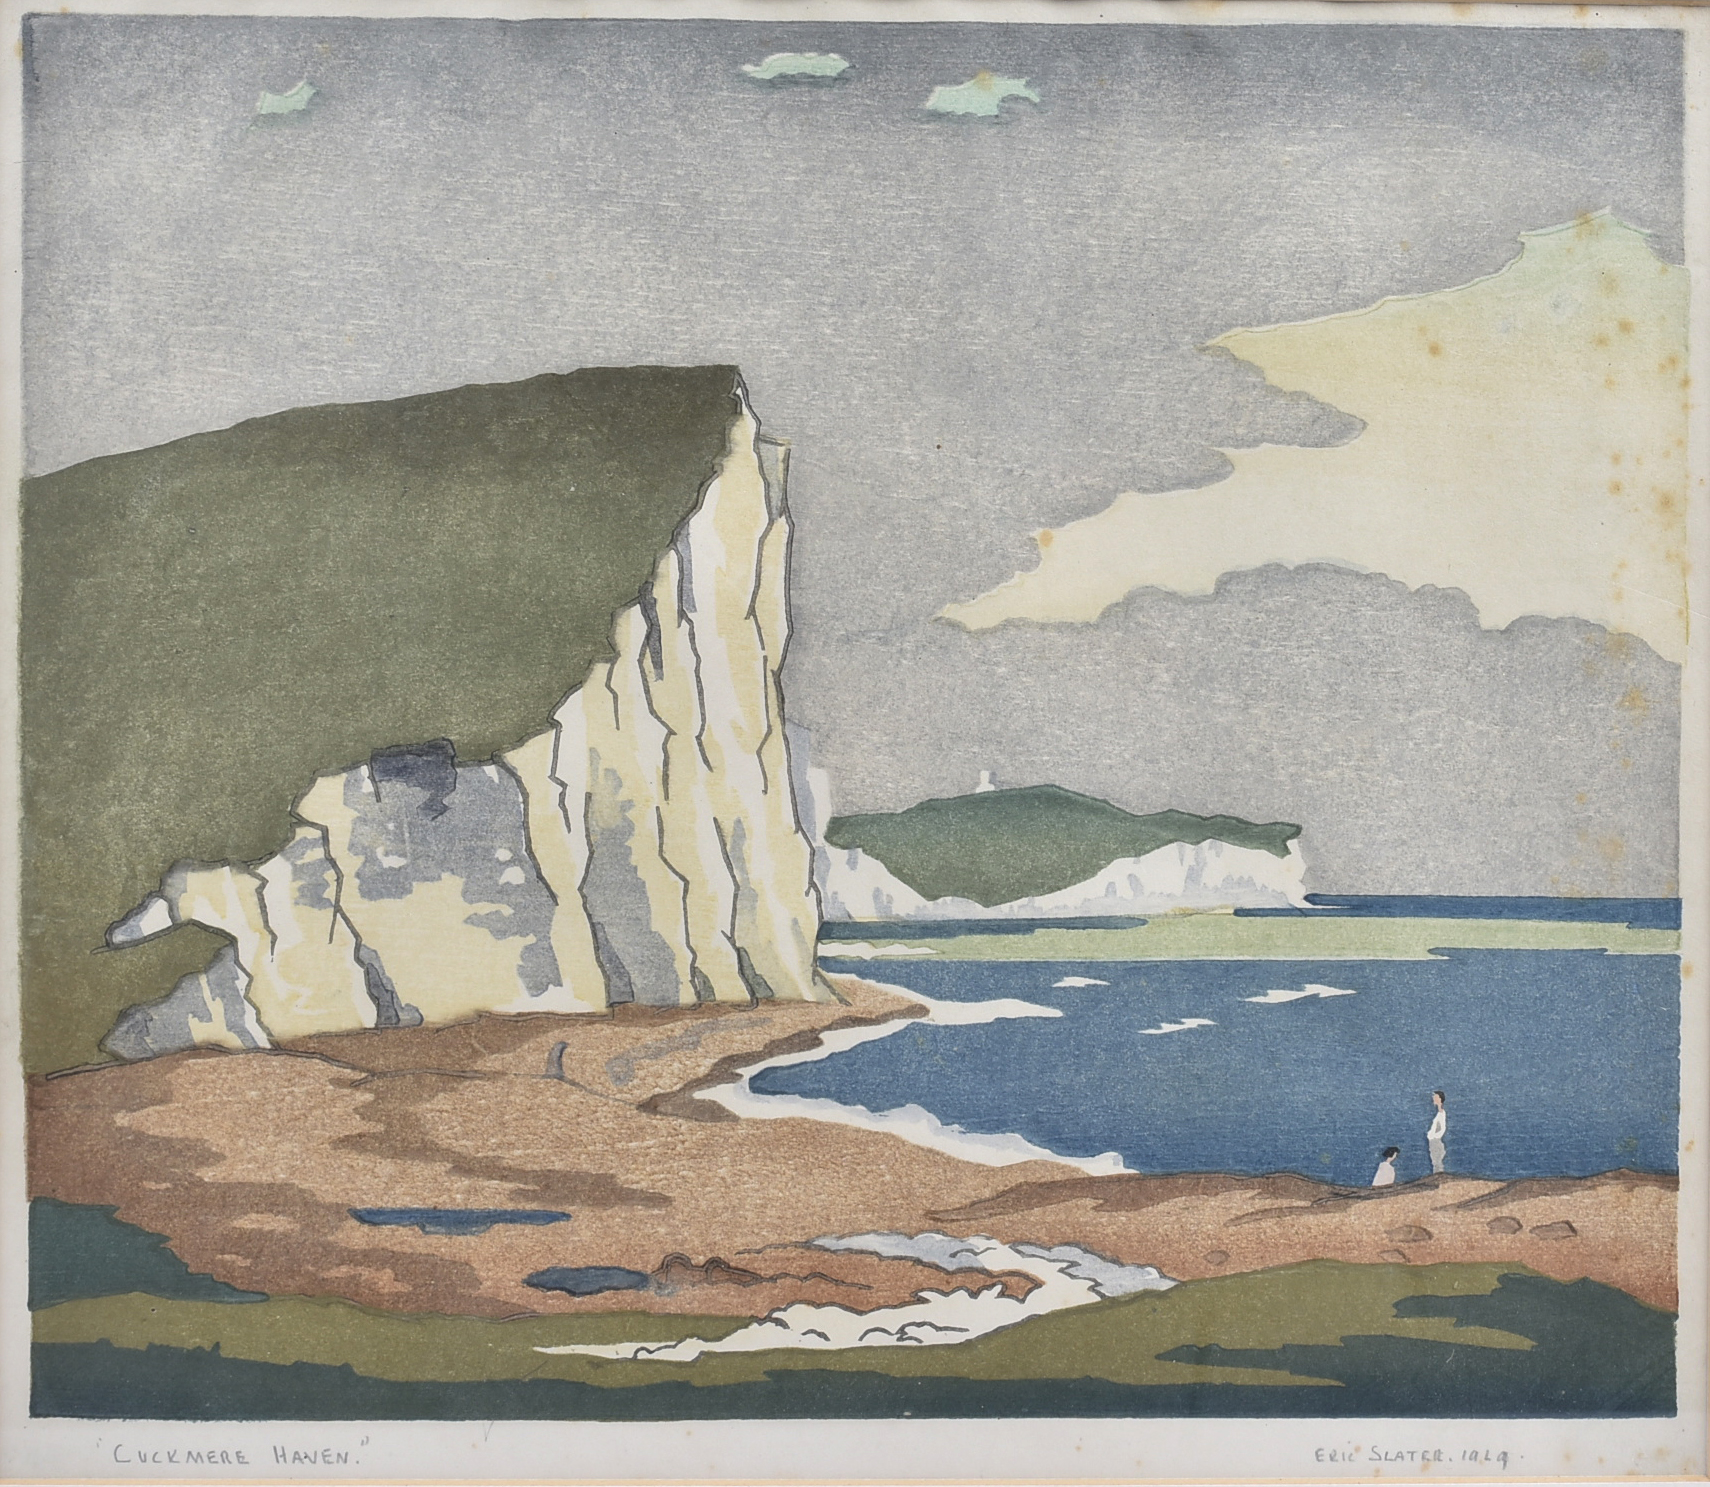 Eric Slater (1896-1963) coloured woodcut, 'Cuckmere Haven', 1929, signed, dated and titled in pencil